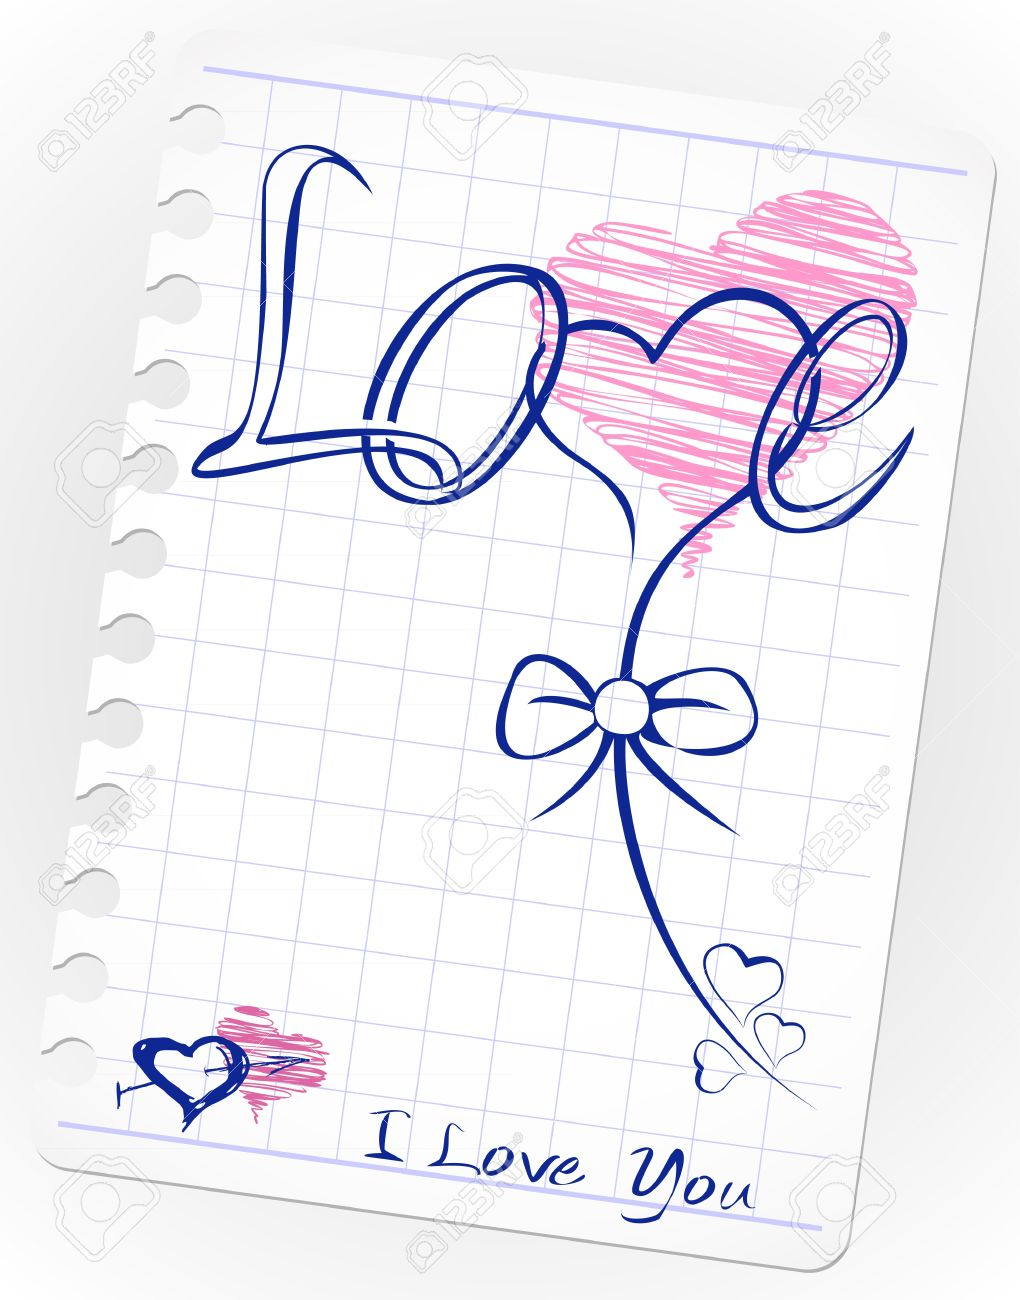 love drawing doodles card. Hand drawn hearts, love, kiss, lipstick, heart shape, shape, stamp Stock Vector - 10256088